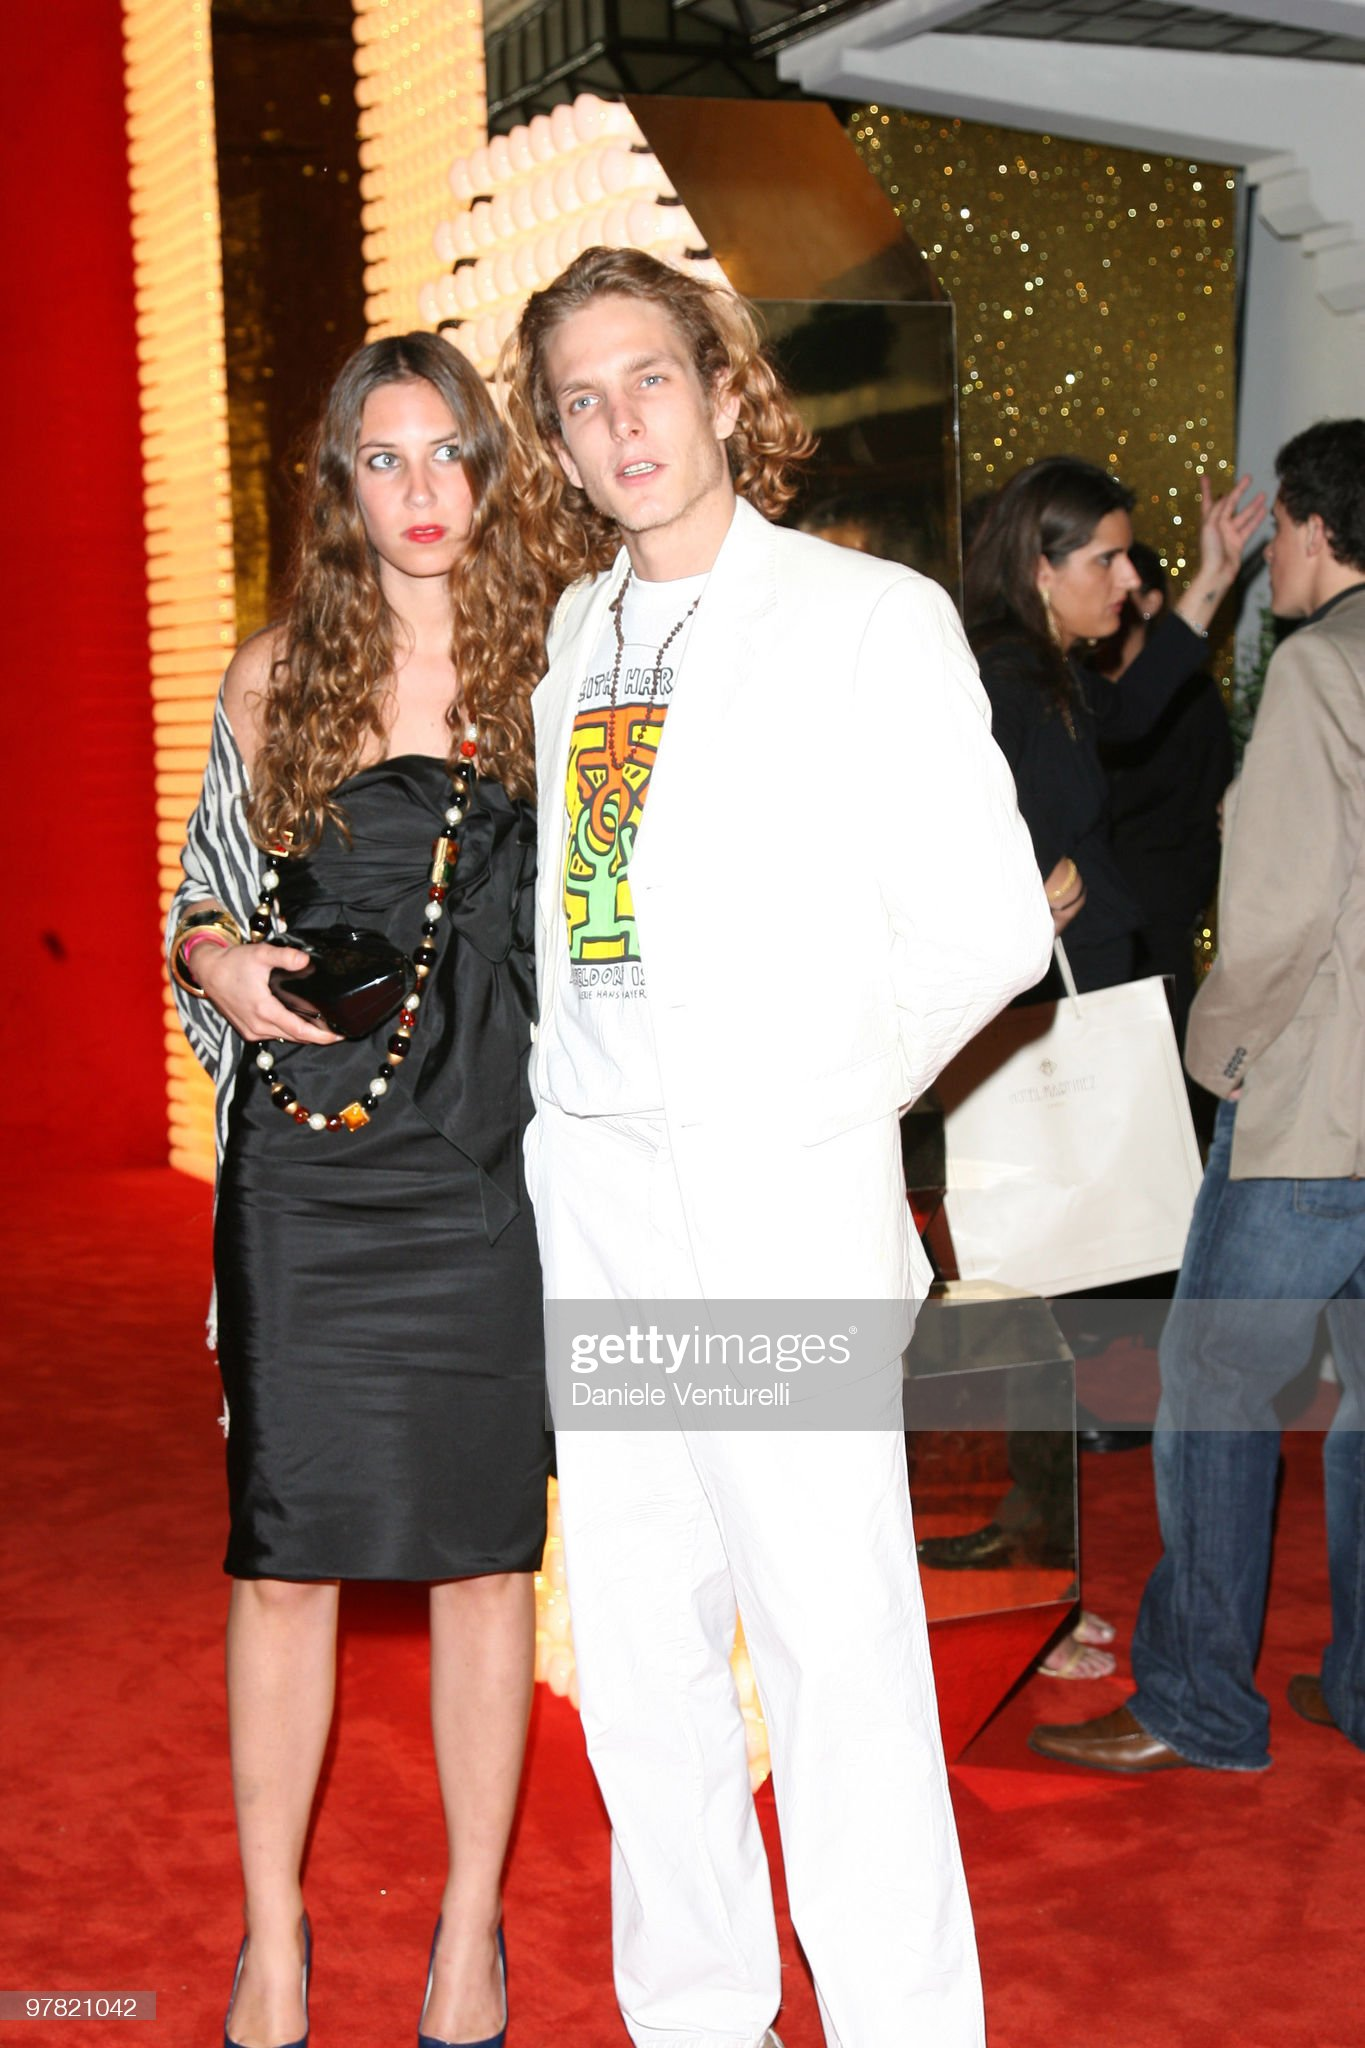 2006 Cannes Film Festival - Dolce & Gabbana Party : News Photo